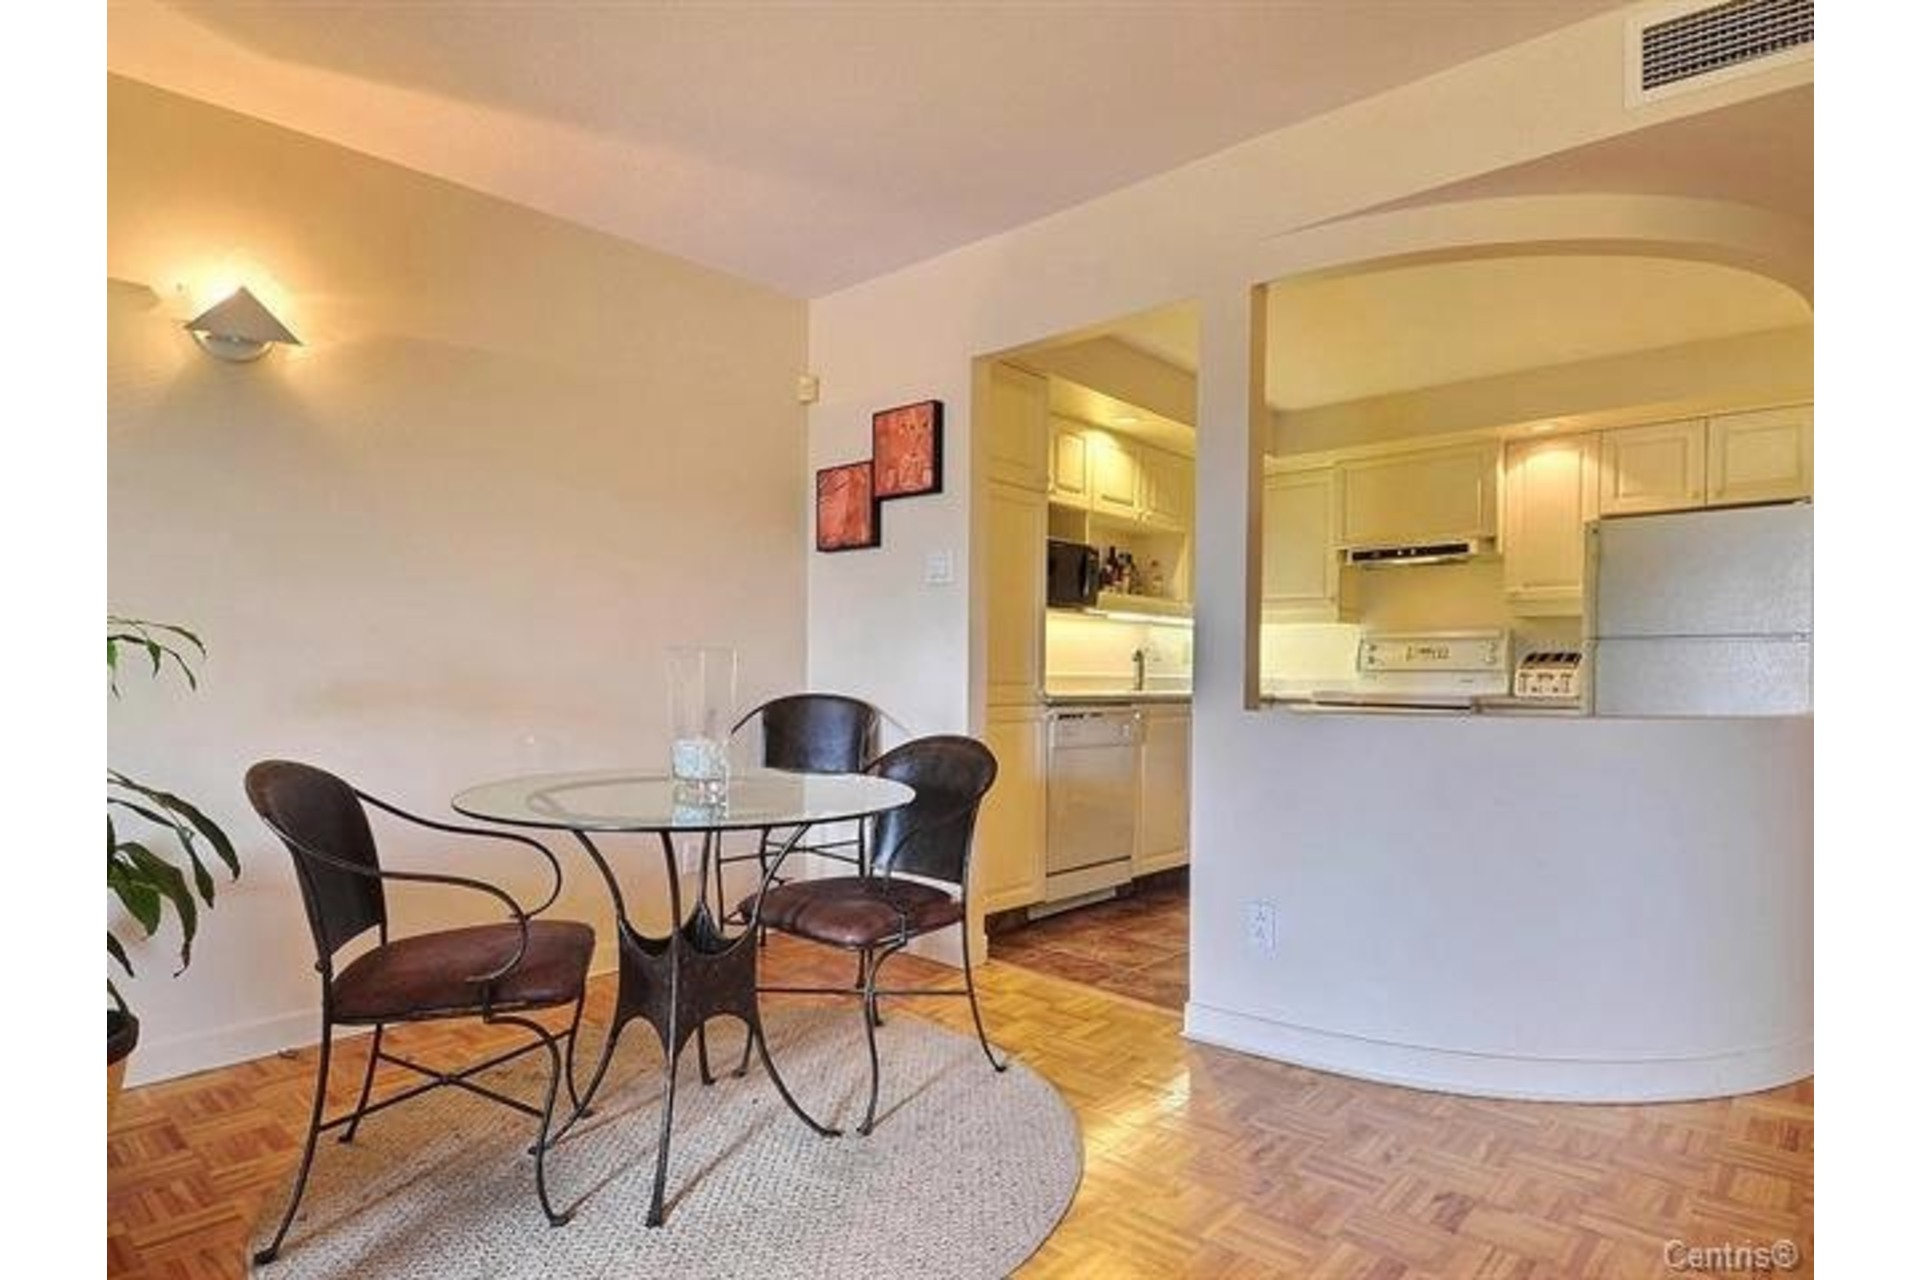 image 4 - Apartment For sale Ville-Marie Montréal  - 4 rooms